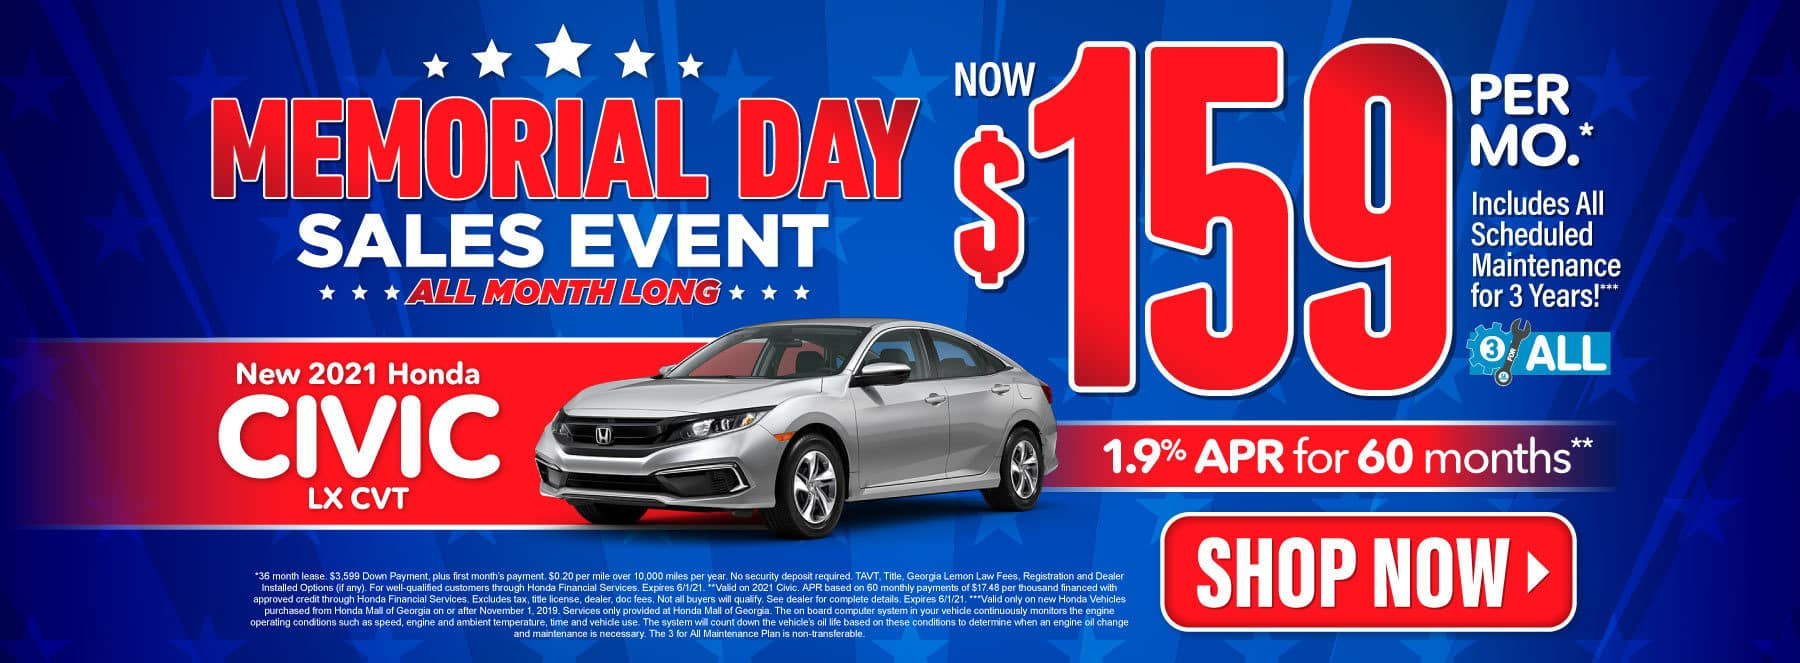 New 2021 Honda Civic | Now $159 per month | Act Now